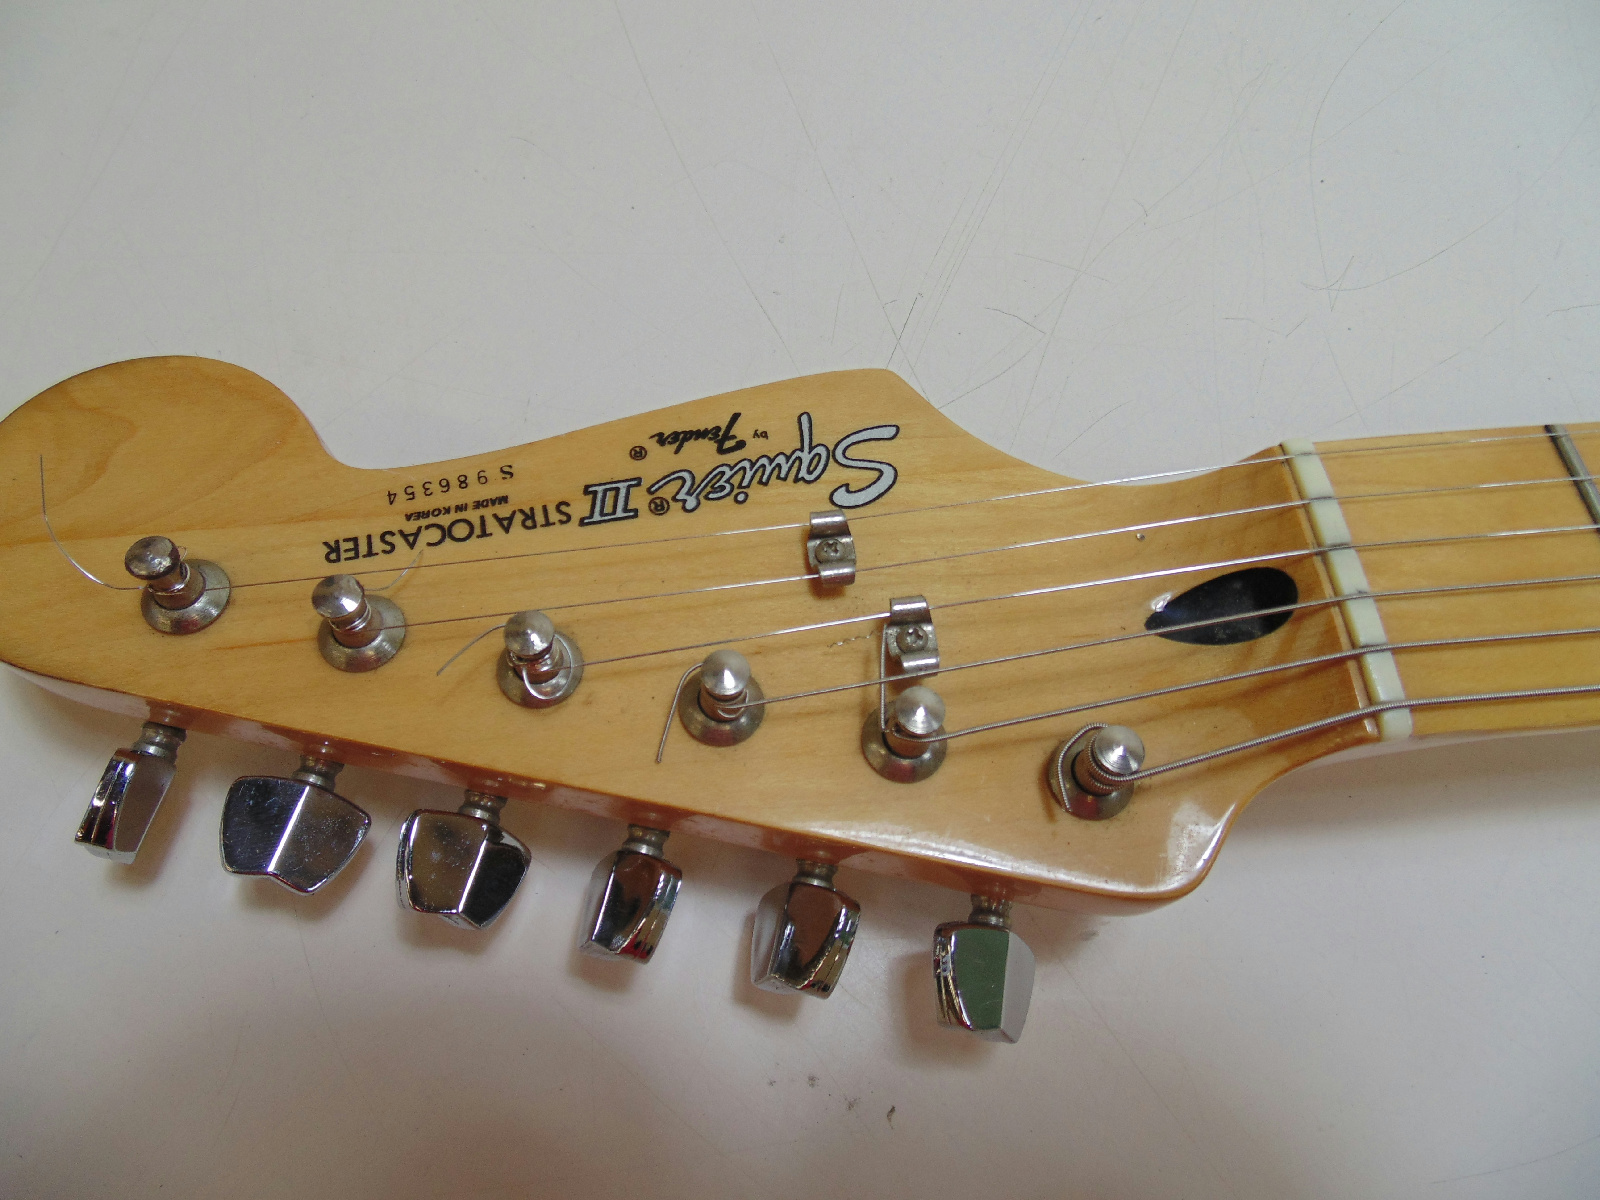 squier by fender strat stratocaster ii cream white electric guitar for repair ebay. Black Bedroom Furniture Sets. Home Design Ideas